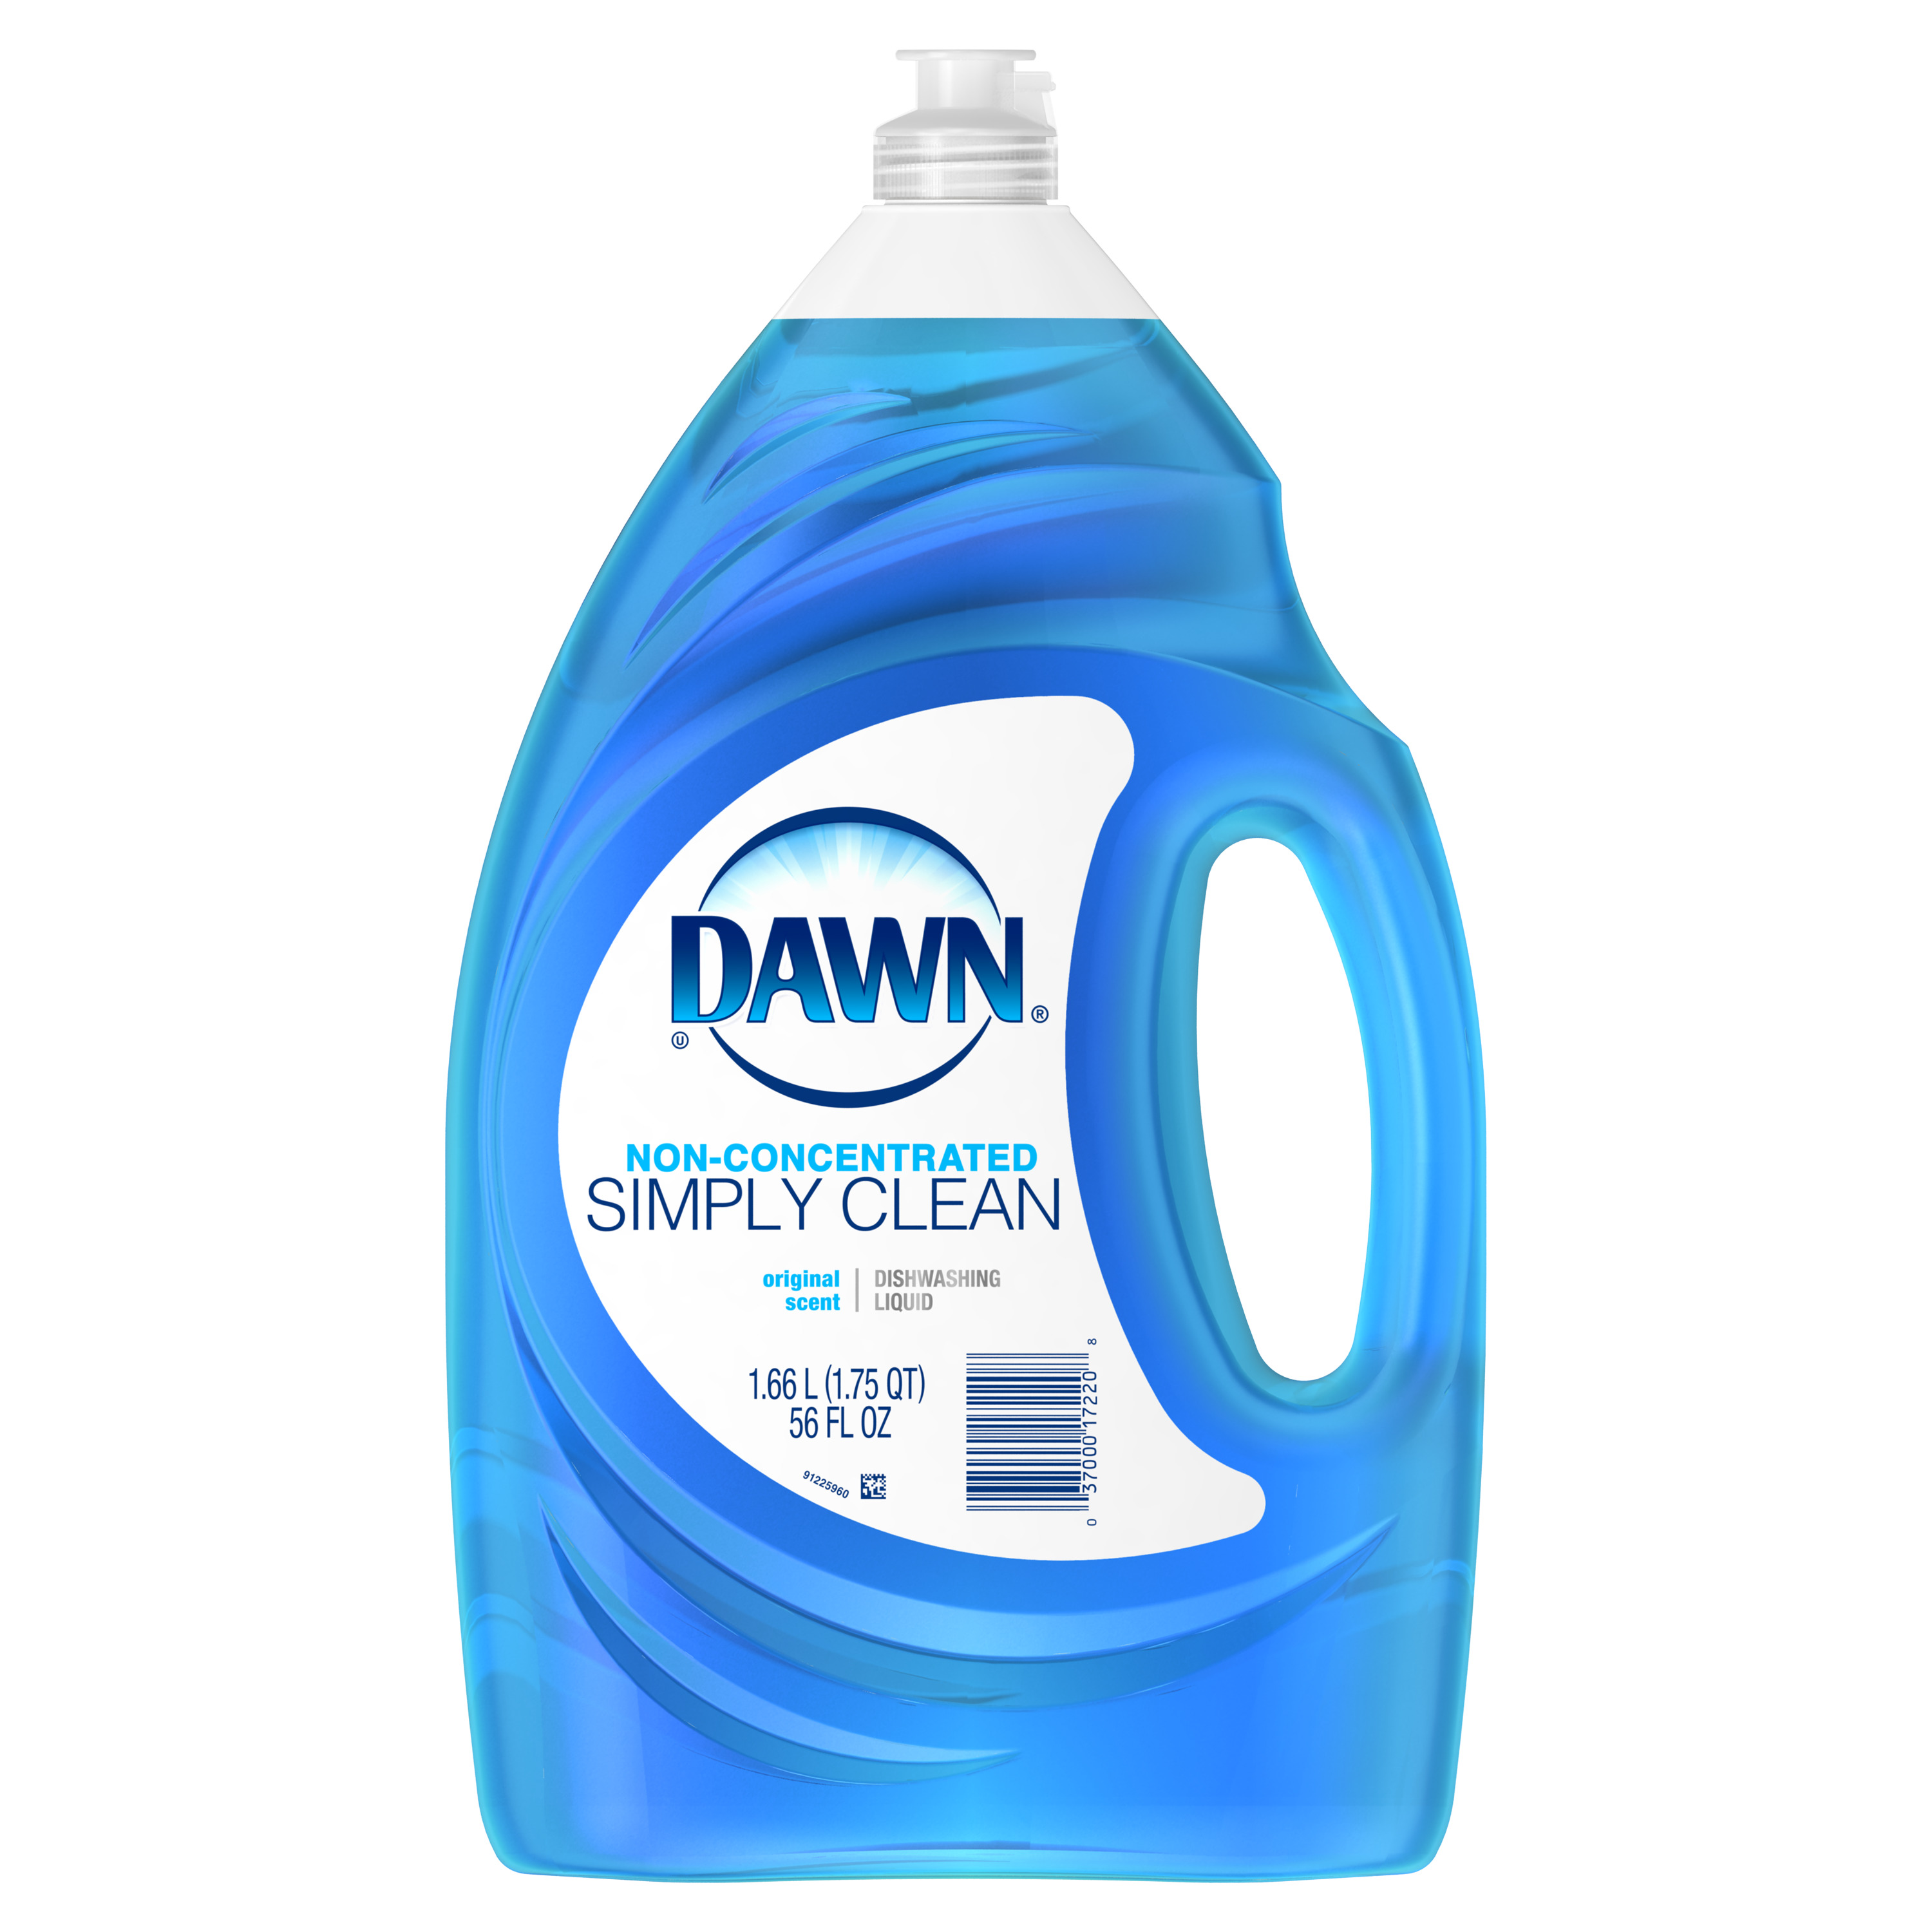 Dawn Simply Clean Dishwashing Liquid Dish Soap, Original Scent, 56 fl oz